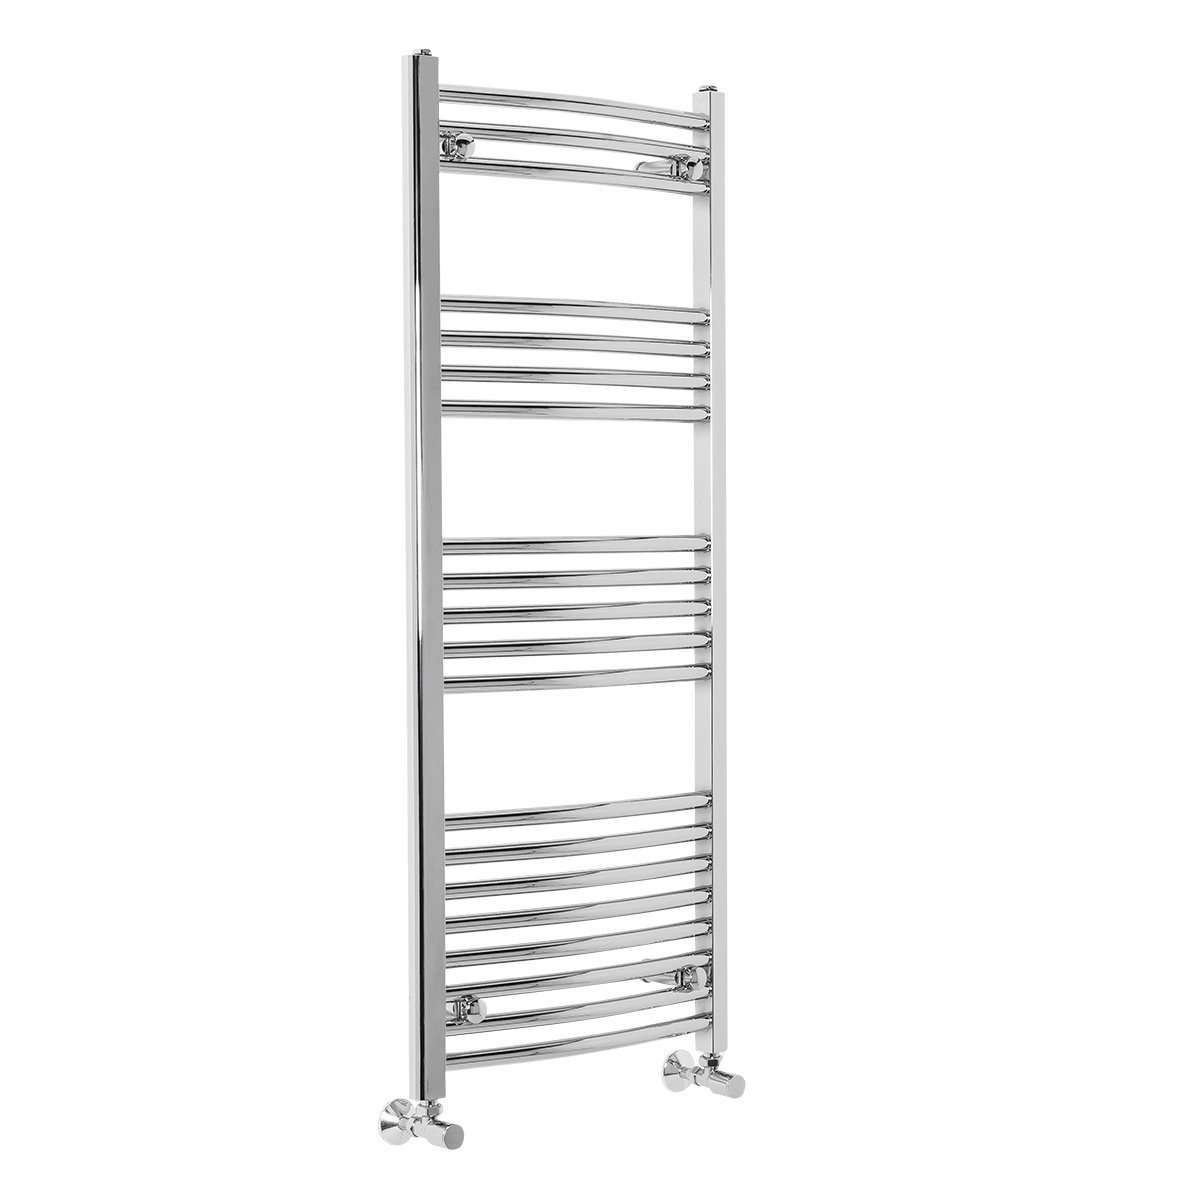 Contemporary Curved Heated Towel Rail Radiator 700 x 400 White WarmeHaus